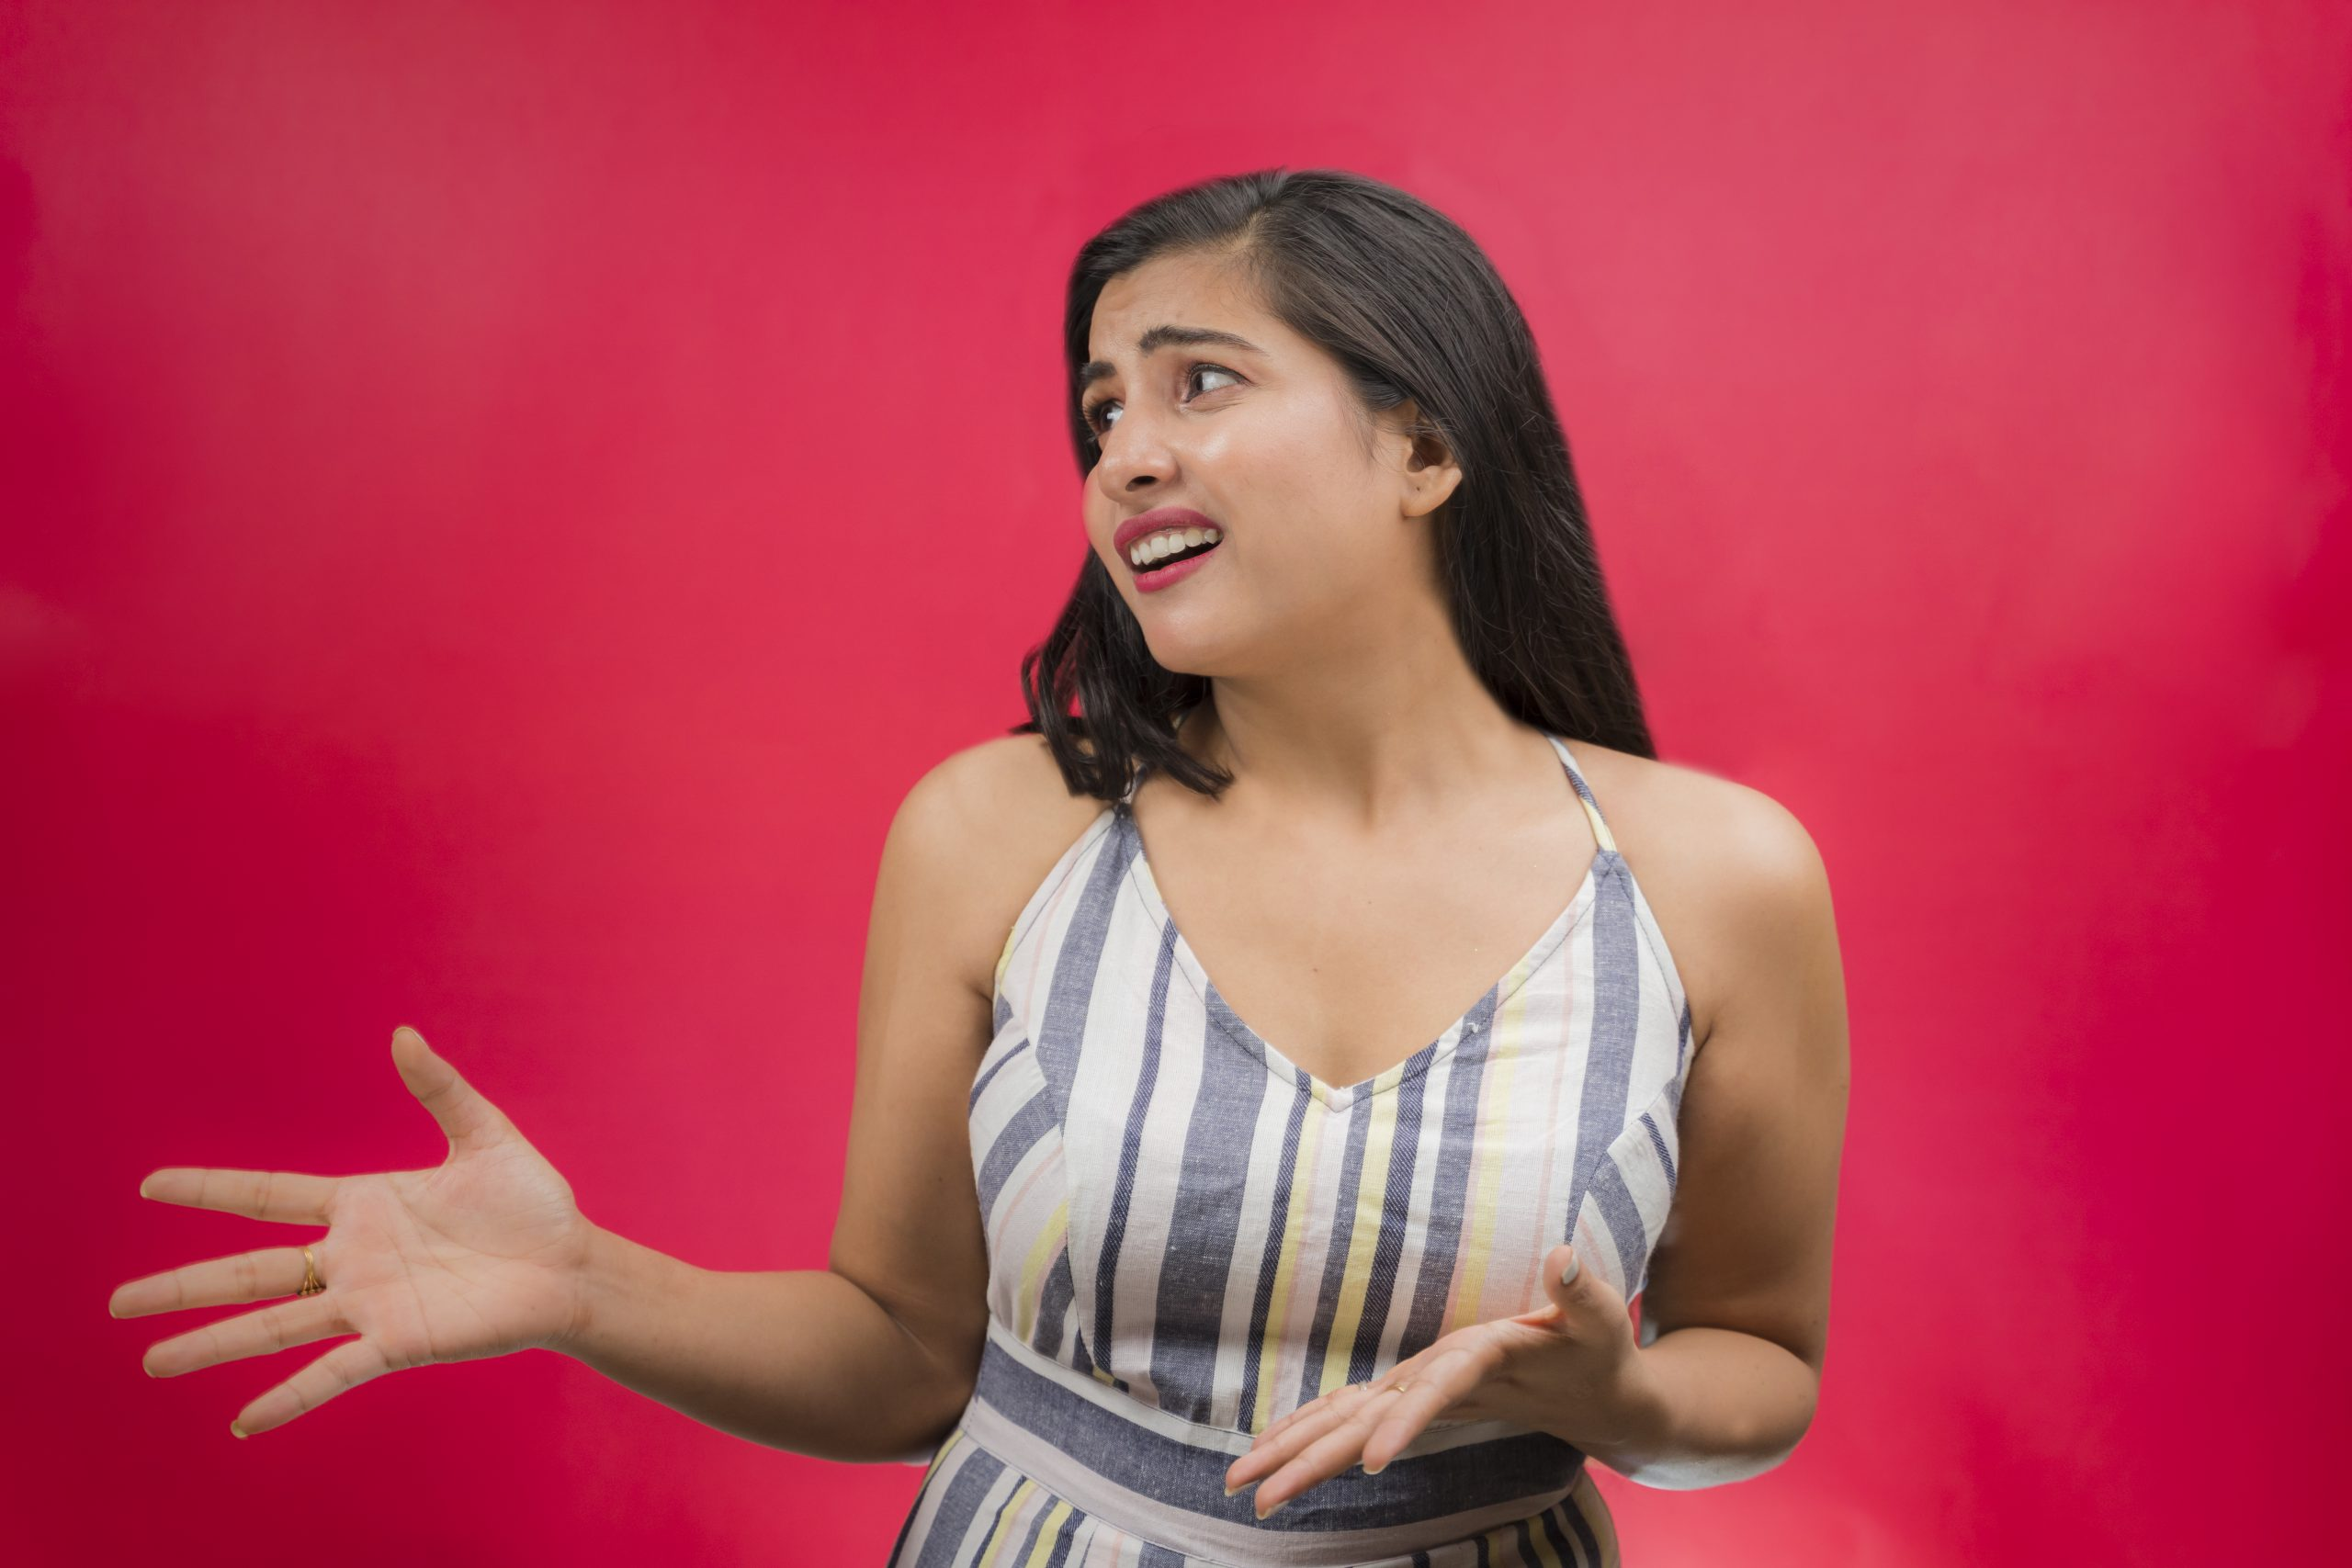 Shocked girl pointing hands